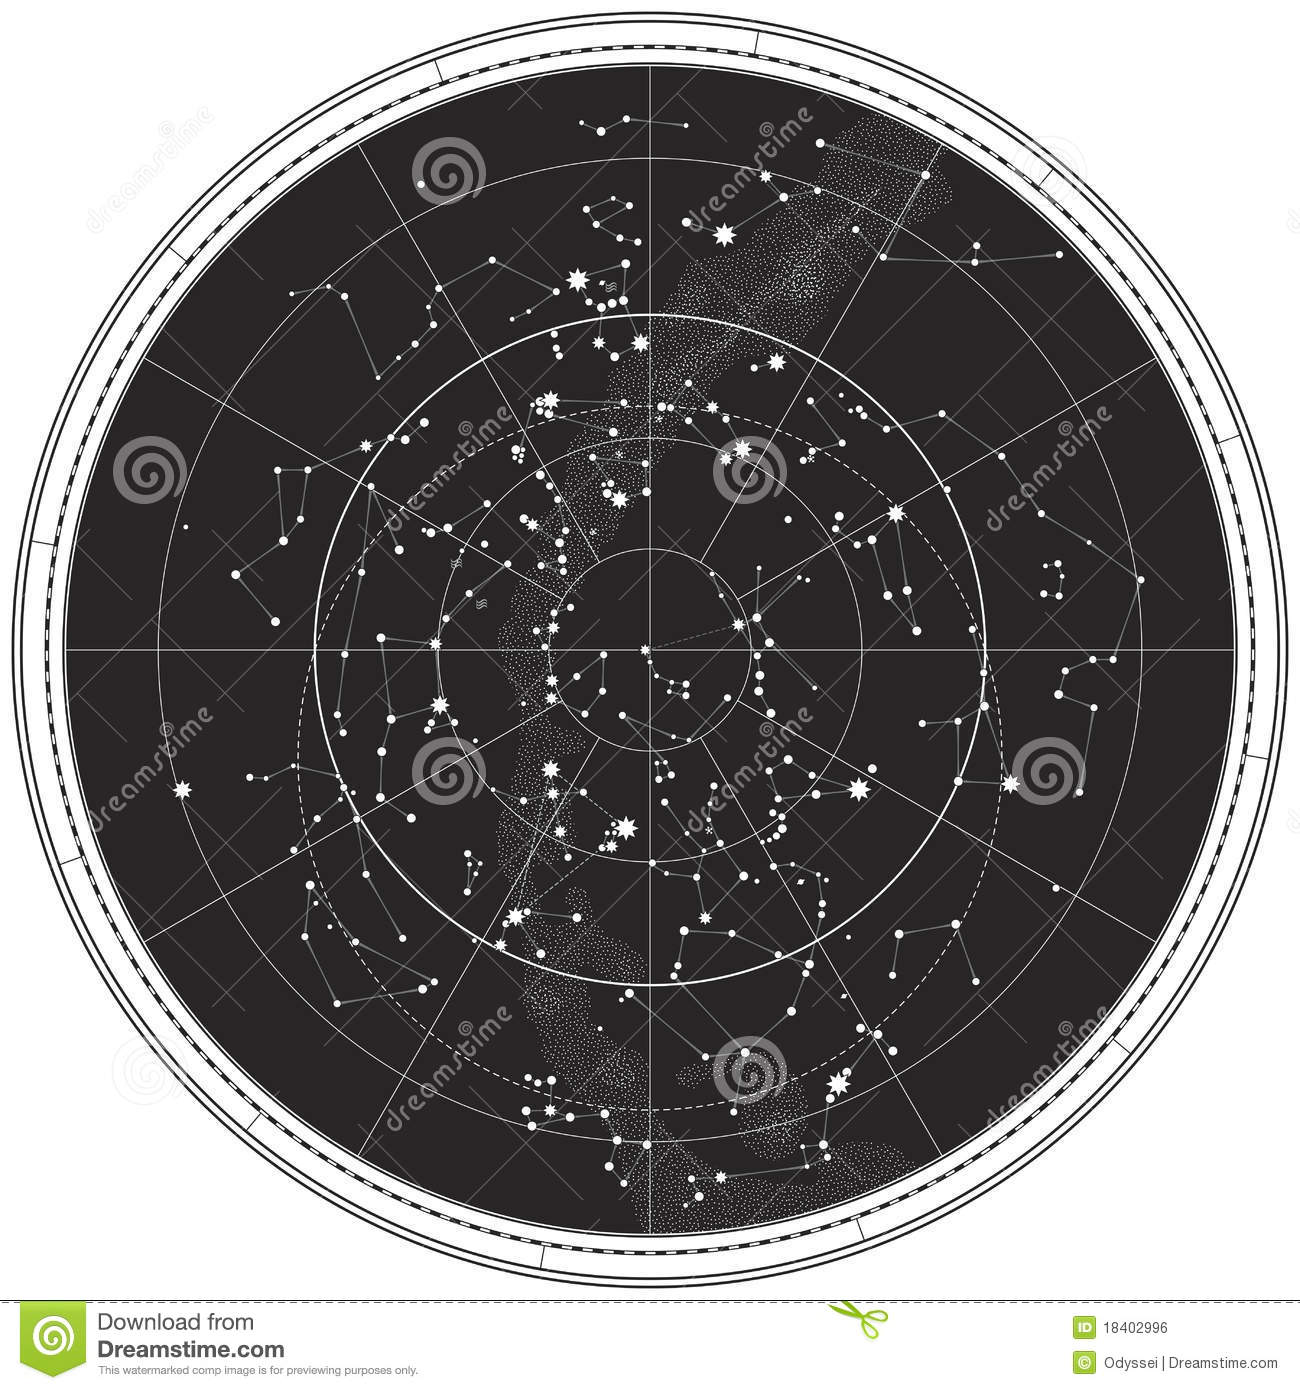 Celestial Map Of The Night Sky Stock Vector Illustration Of Orion - Night sky map northern hemisphere